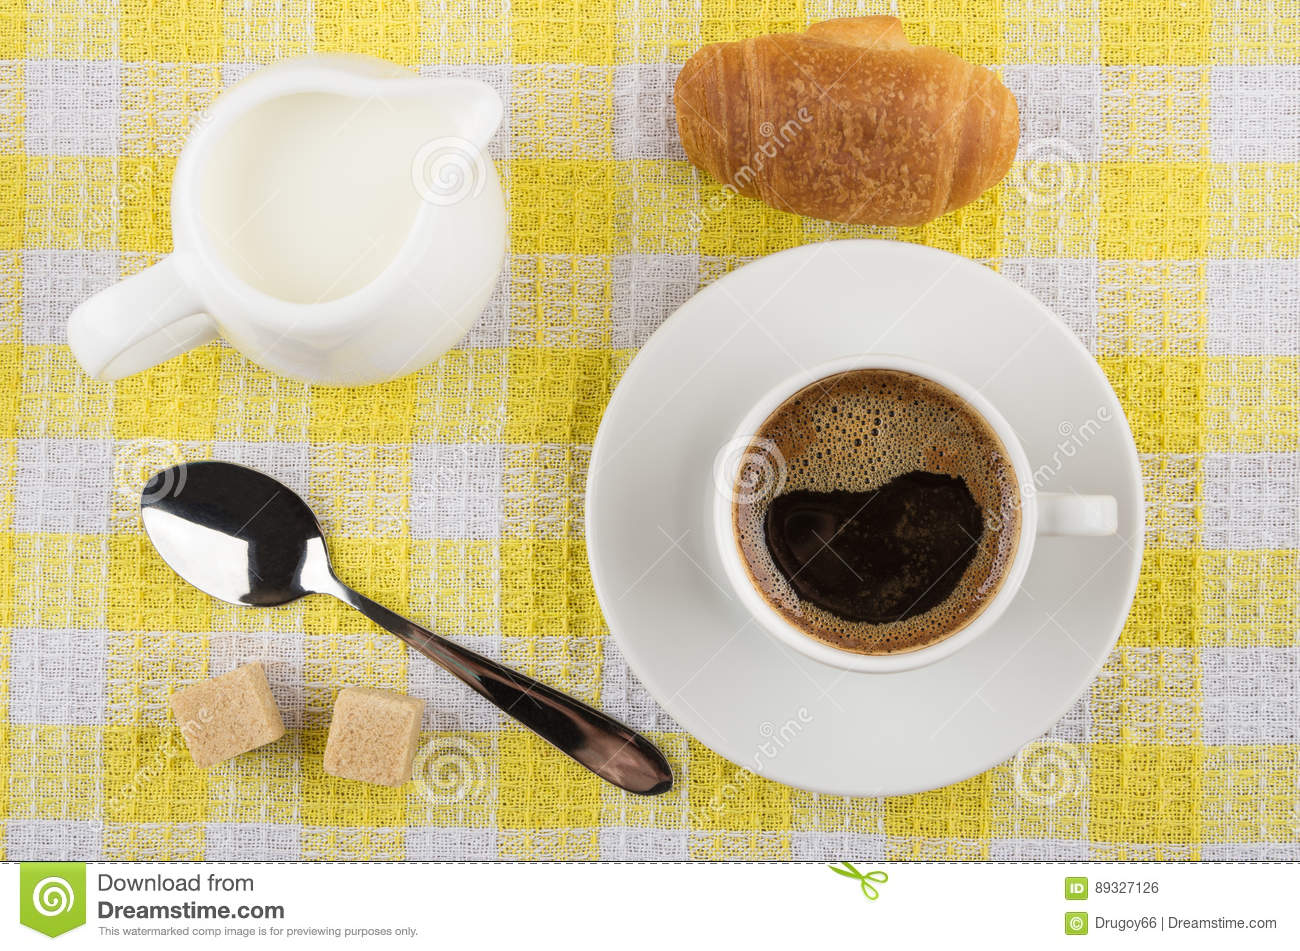 Coffee cup, milk jug, croissant, sugar and spoon on napkin